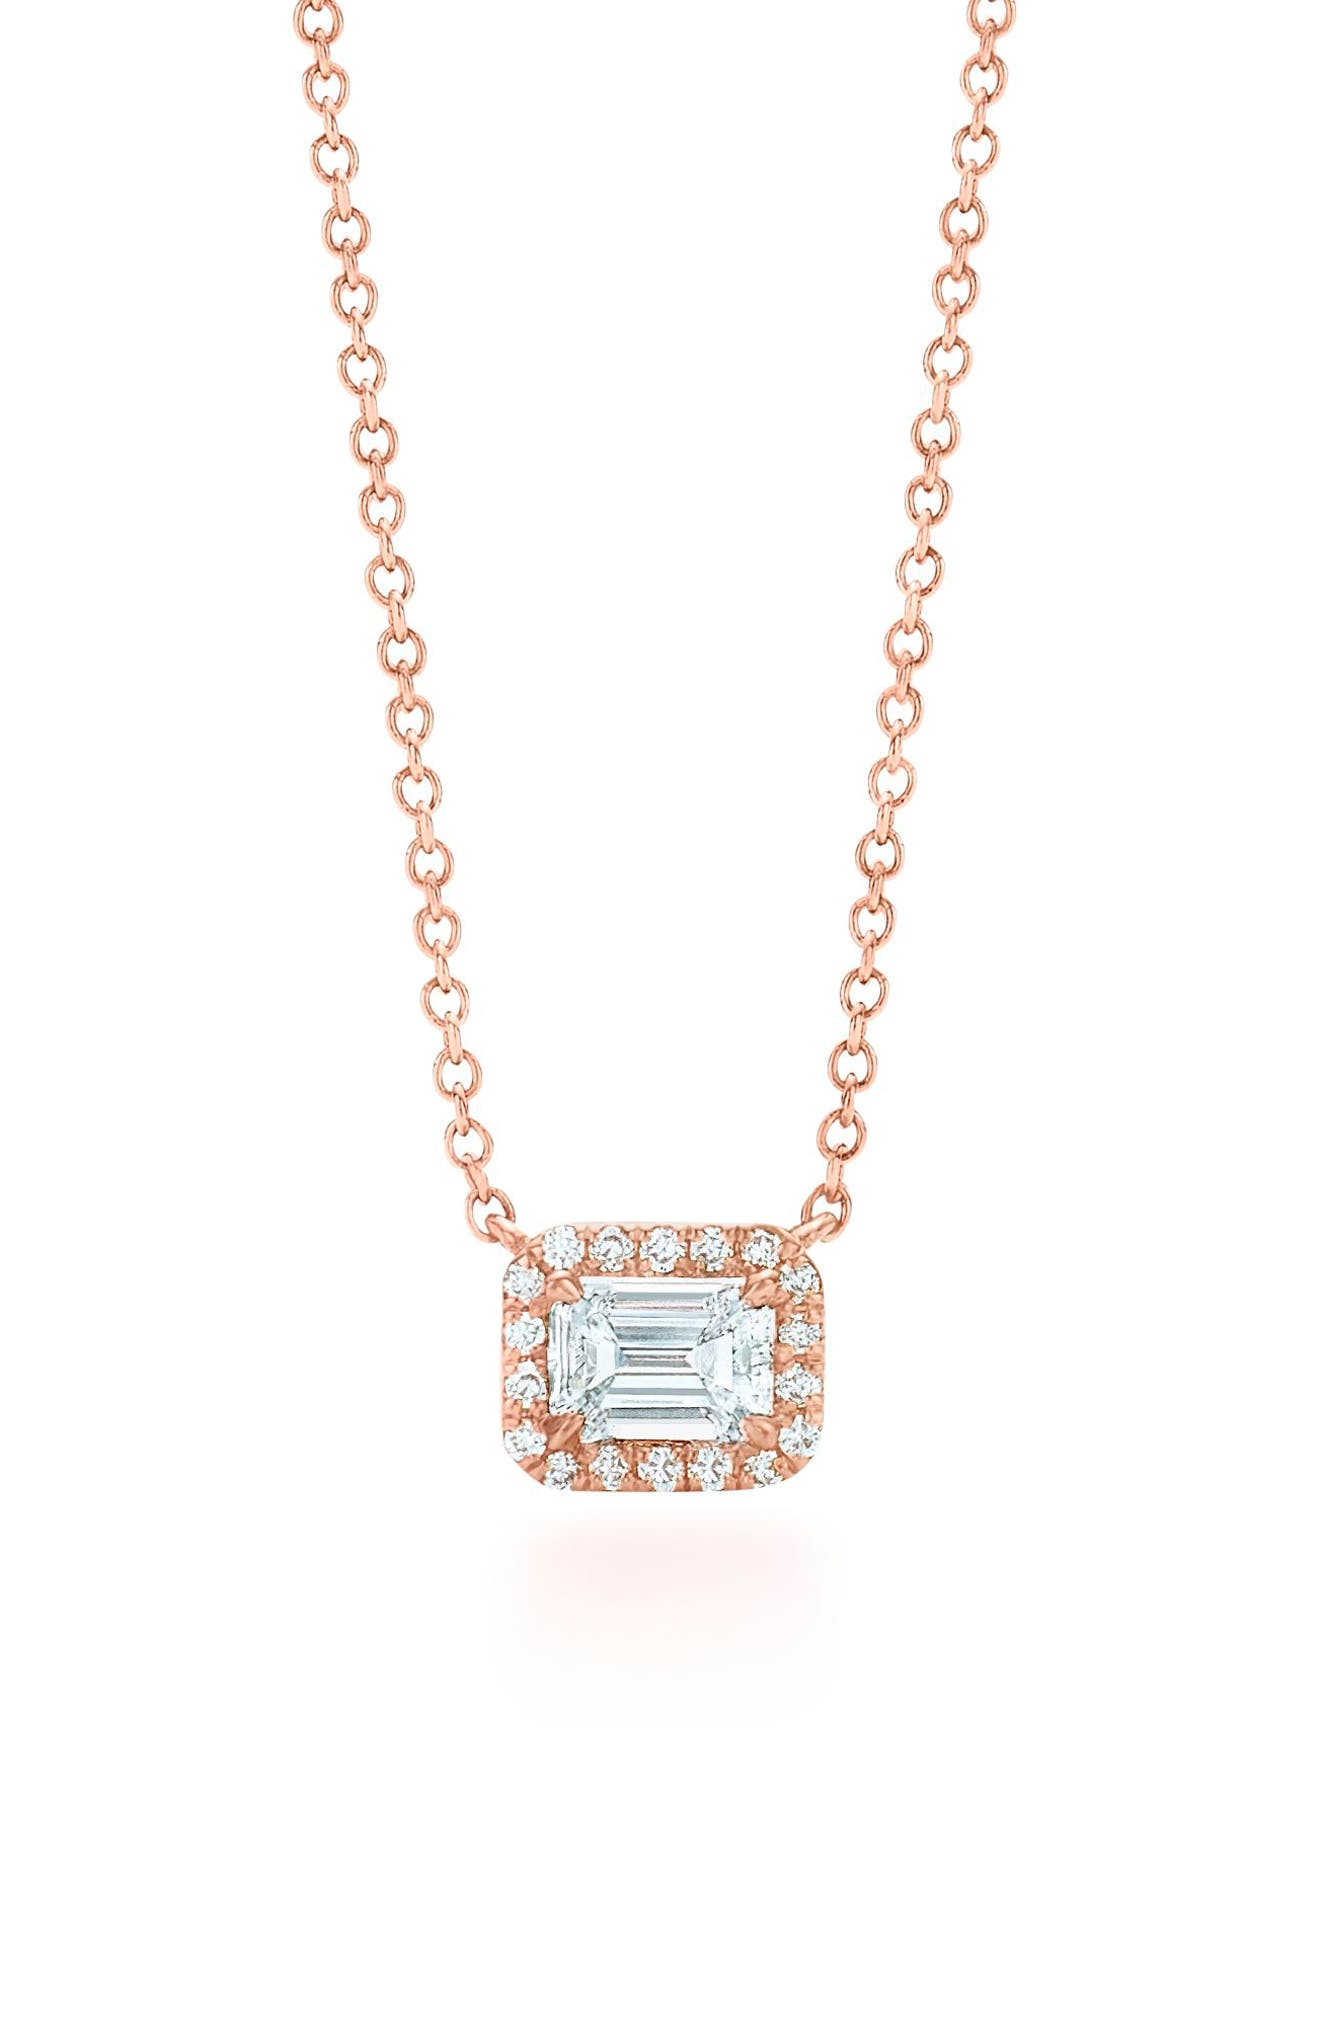 Emerald Cut Diamond Pendant Necklace,                         Main,                         color, Rose Gold